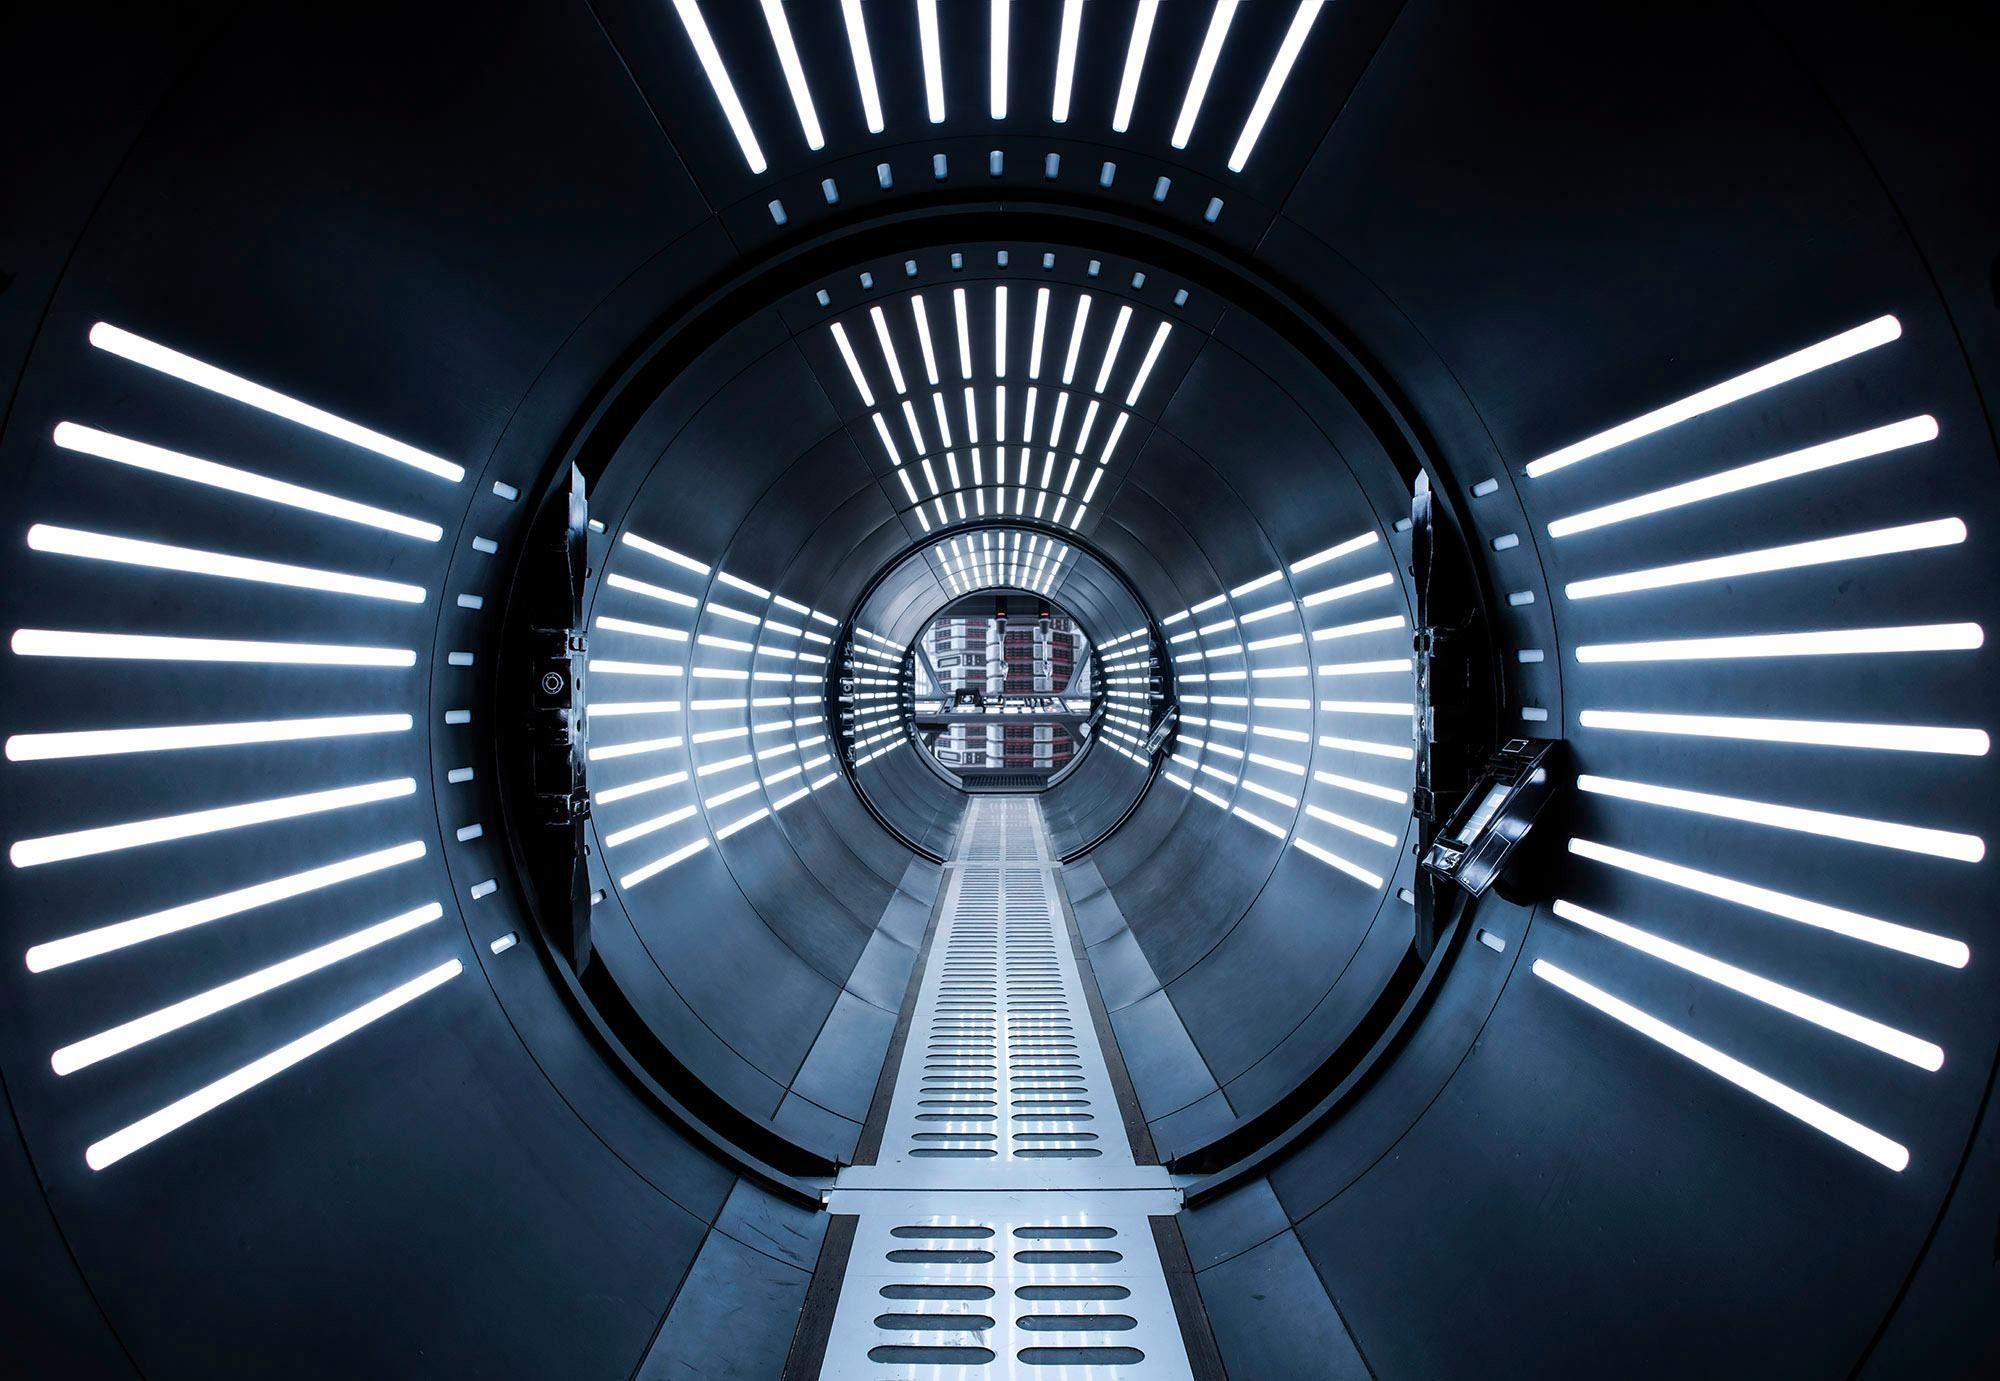 Komar Fototapete »Disney Star Wars – Tunnel« 368/254 cm